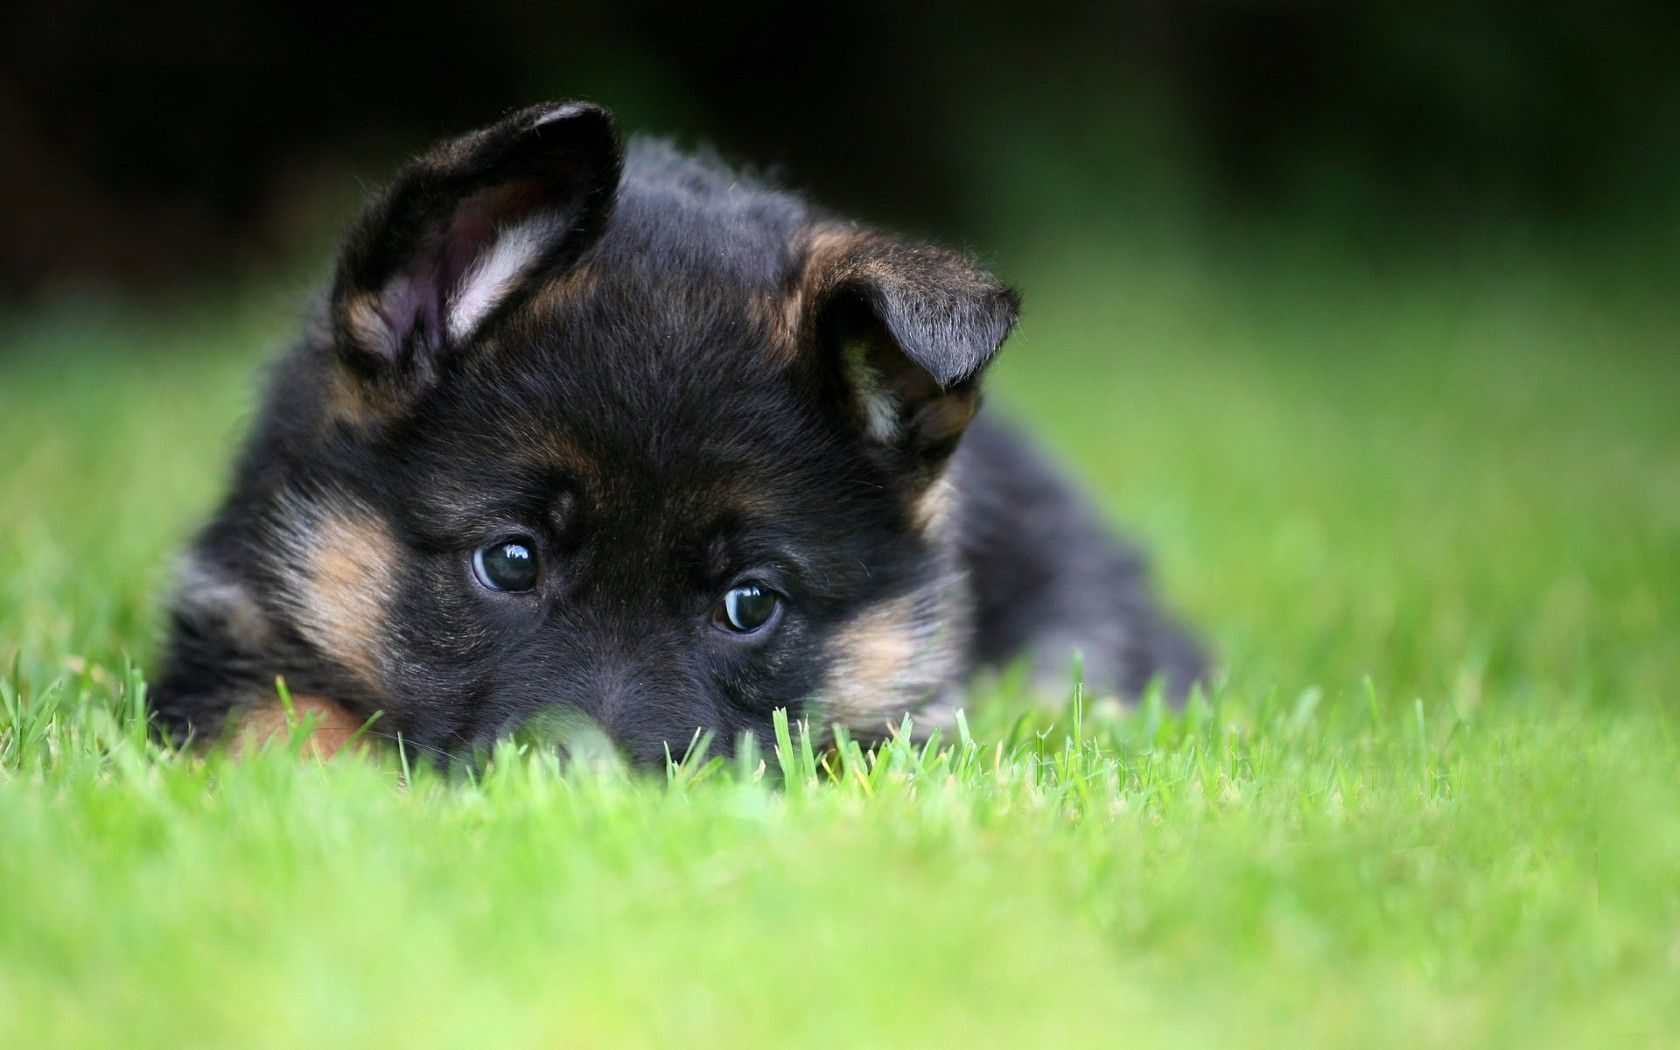 Happy germanshepherd share with others if you like it